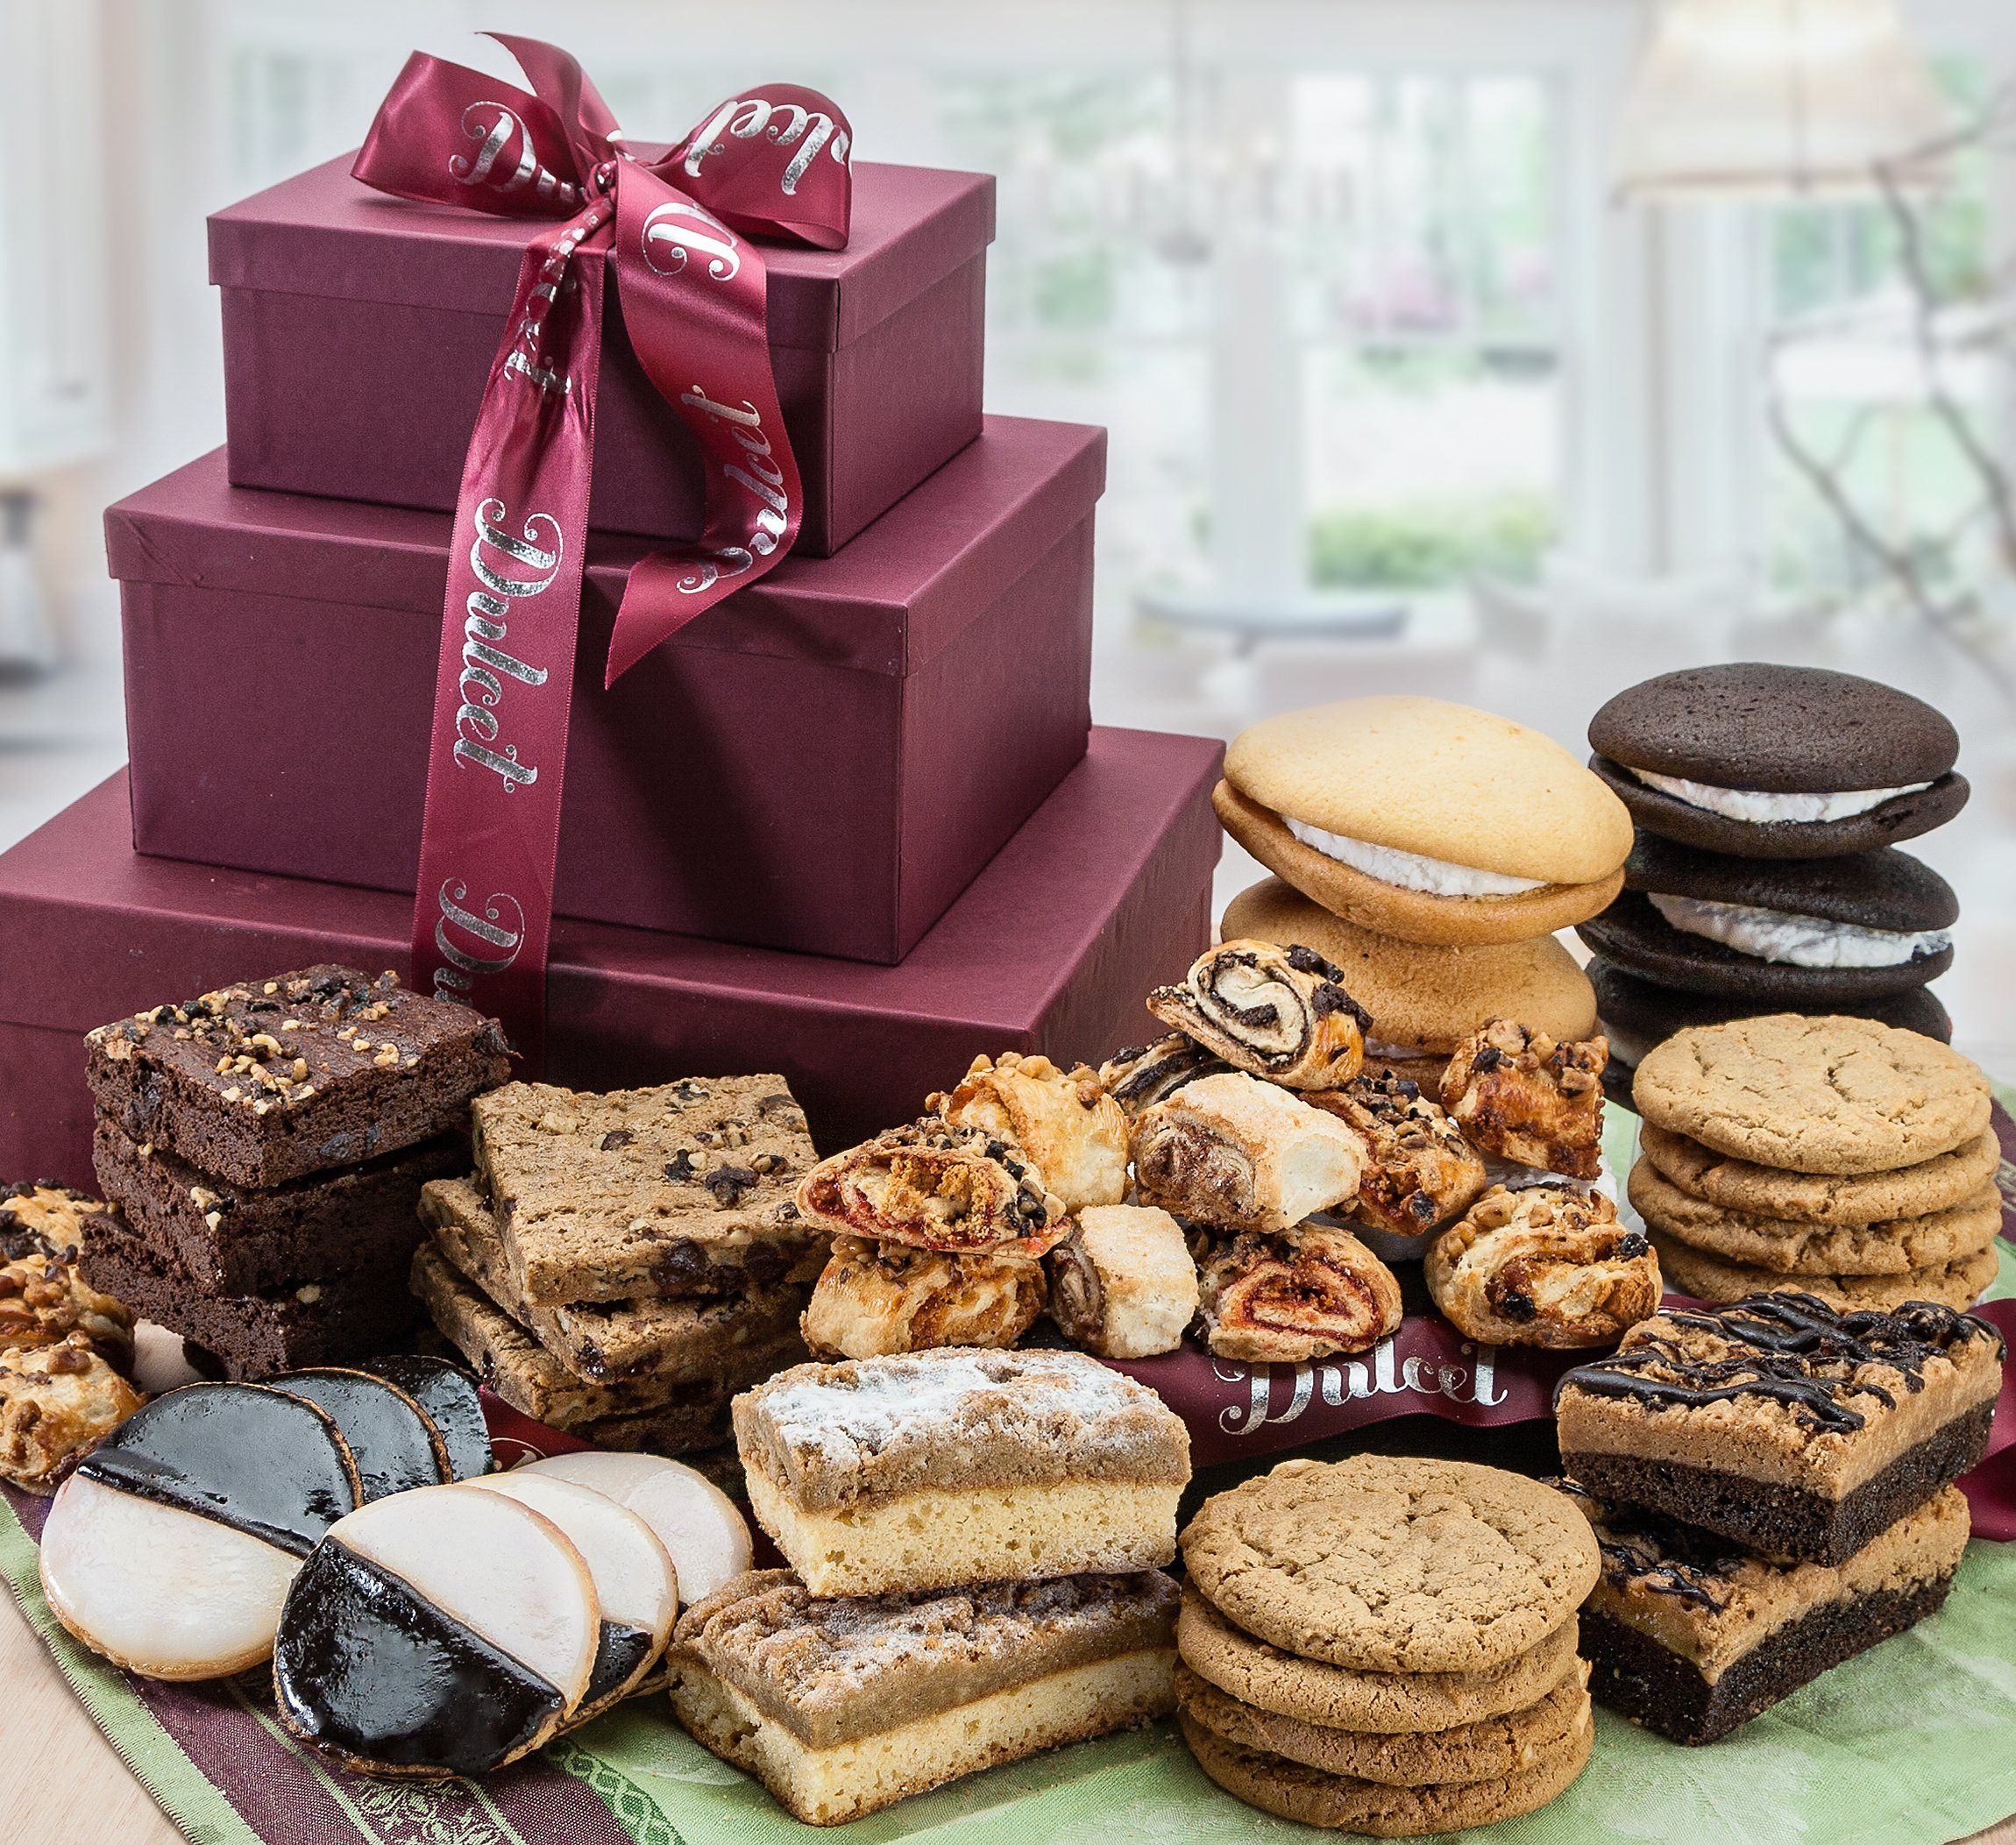 Dulcet 3 Tier Gift Basket Tower Includes: Walnut Brownies, Chocolate Chip Blondies, Black and White Cookies, Crumb Cakes, Chocolate Chip Cookies, and more! Top Gift! by Dulcet Gift Baskets (Image #1)